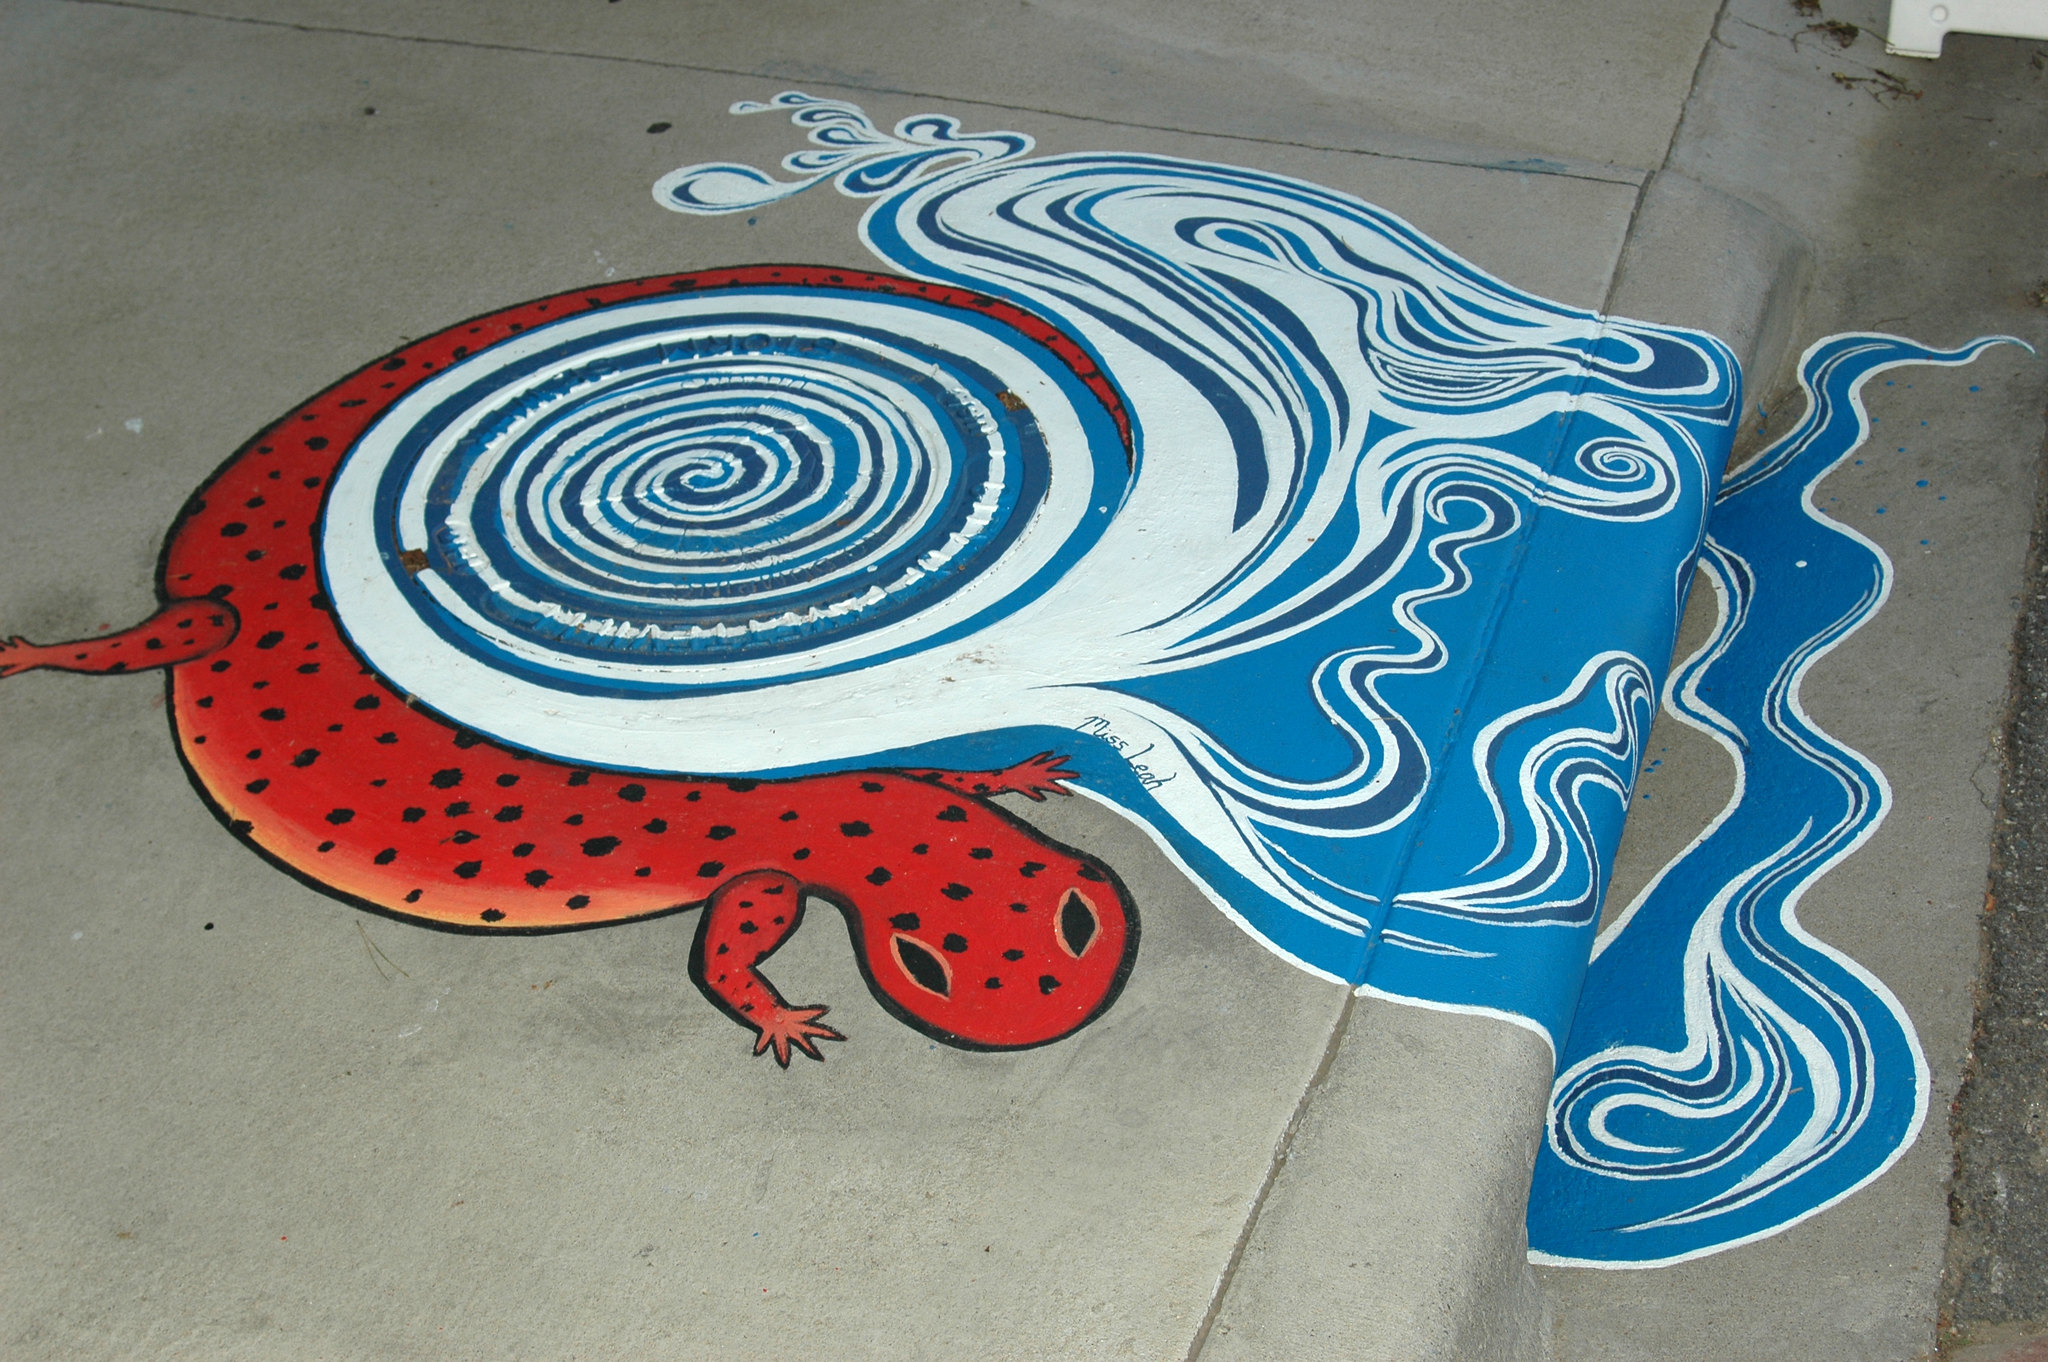 Picture of upstream art on a storm drain showing a cave salamander